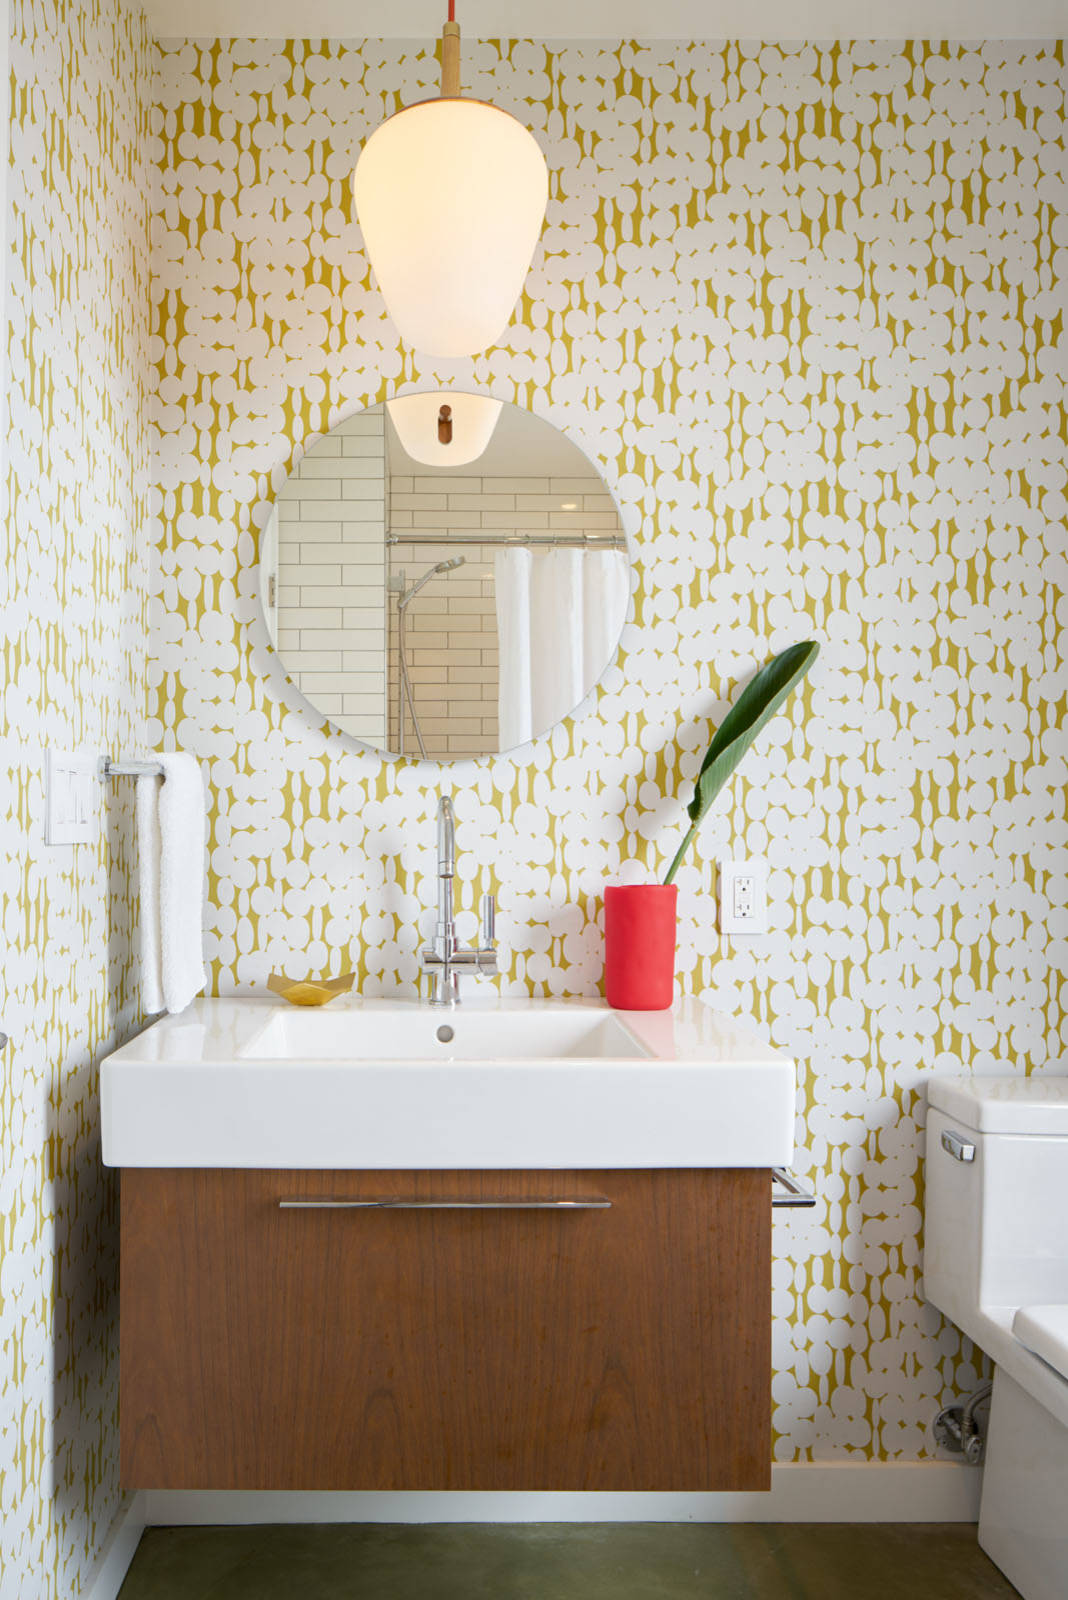 15 reasons to love bathroom wallpaper for Bathroom wallpaper